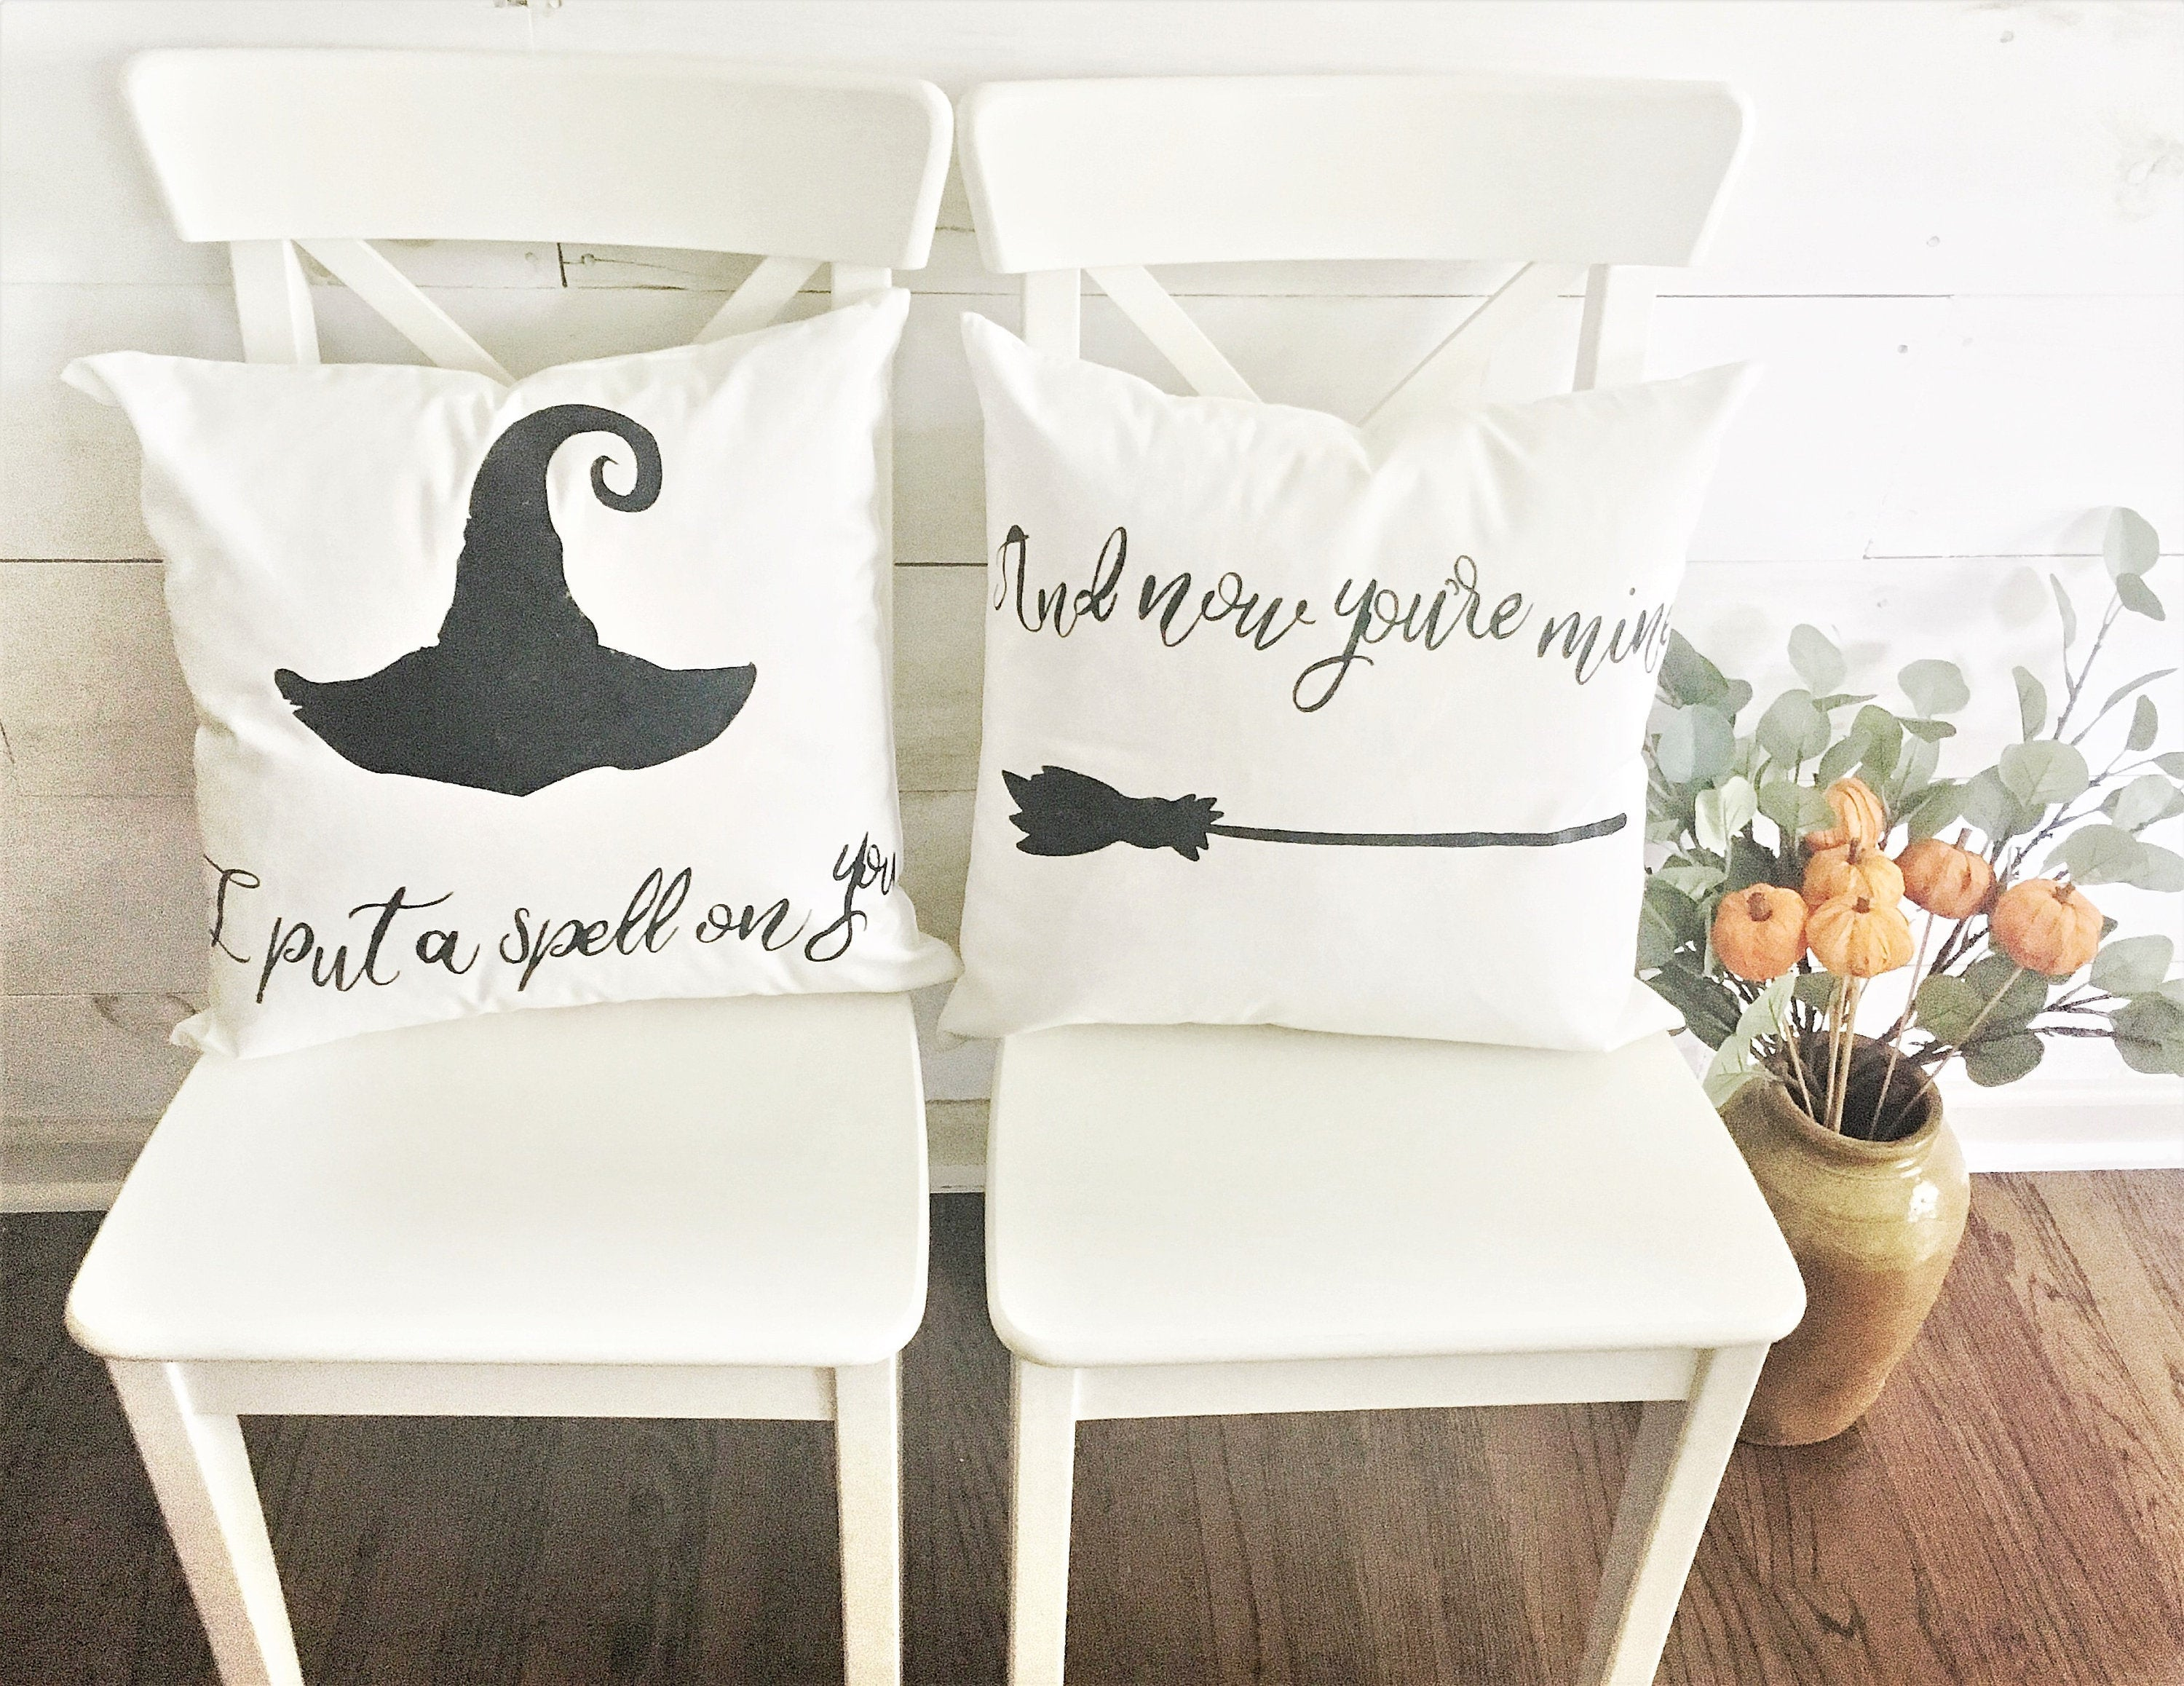 I Put A Spell On You, And Now You're Mine! Pair of hand painted throw pillow covers